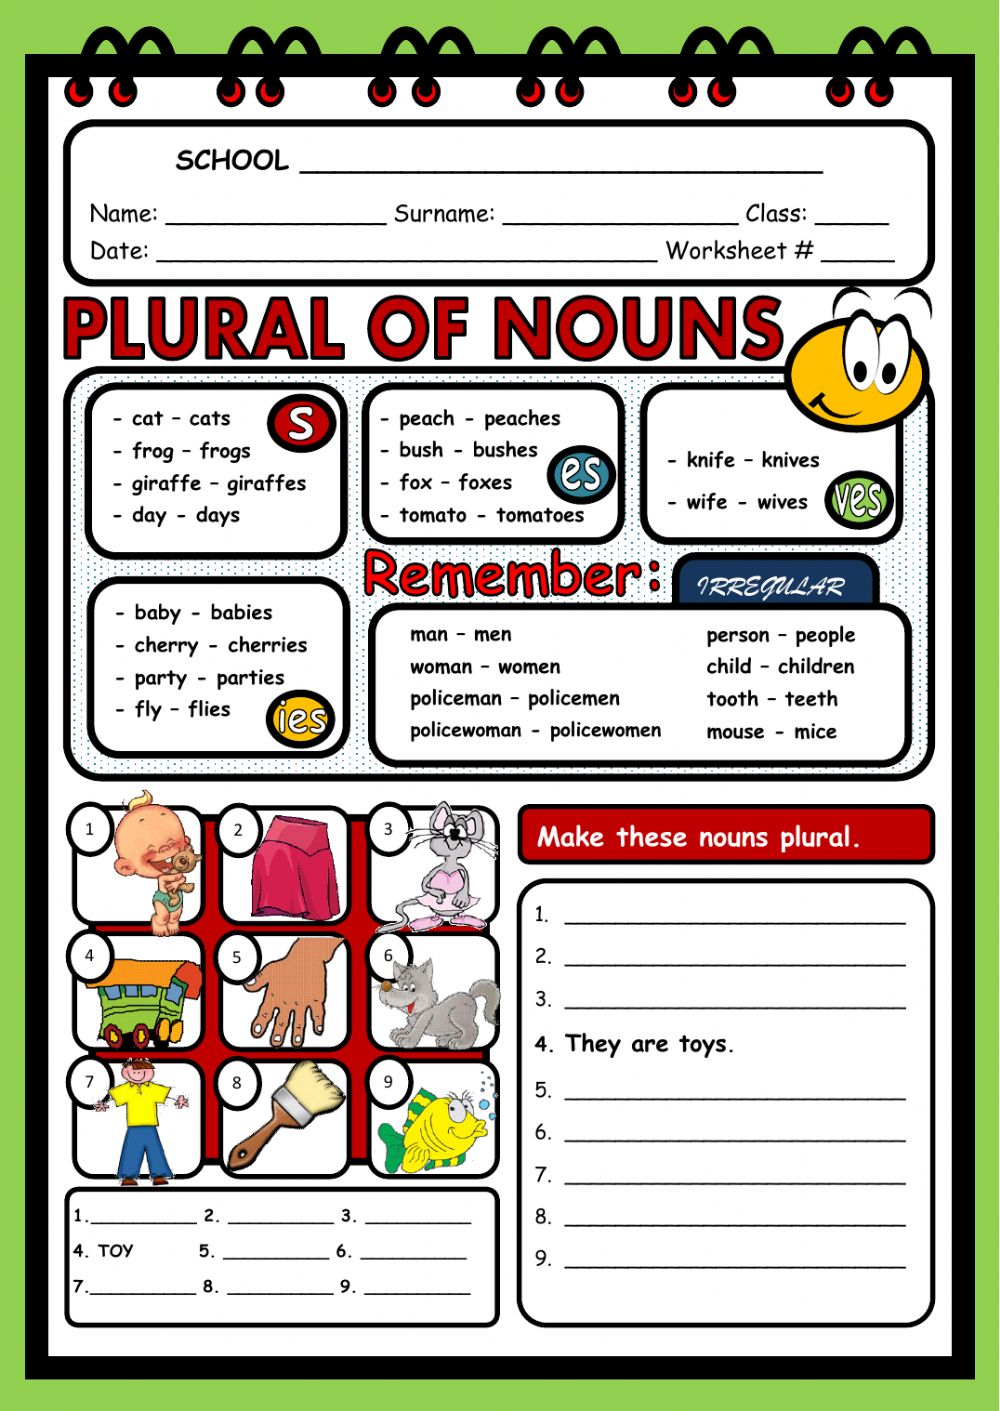 Plural of nouns - Interactive worksheet